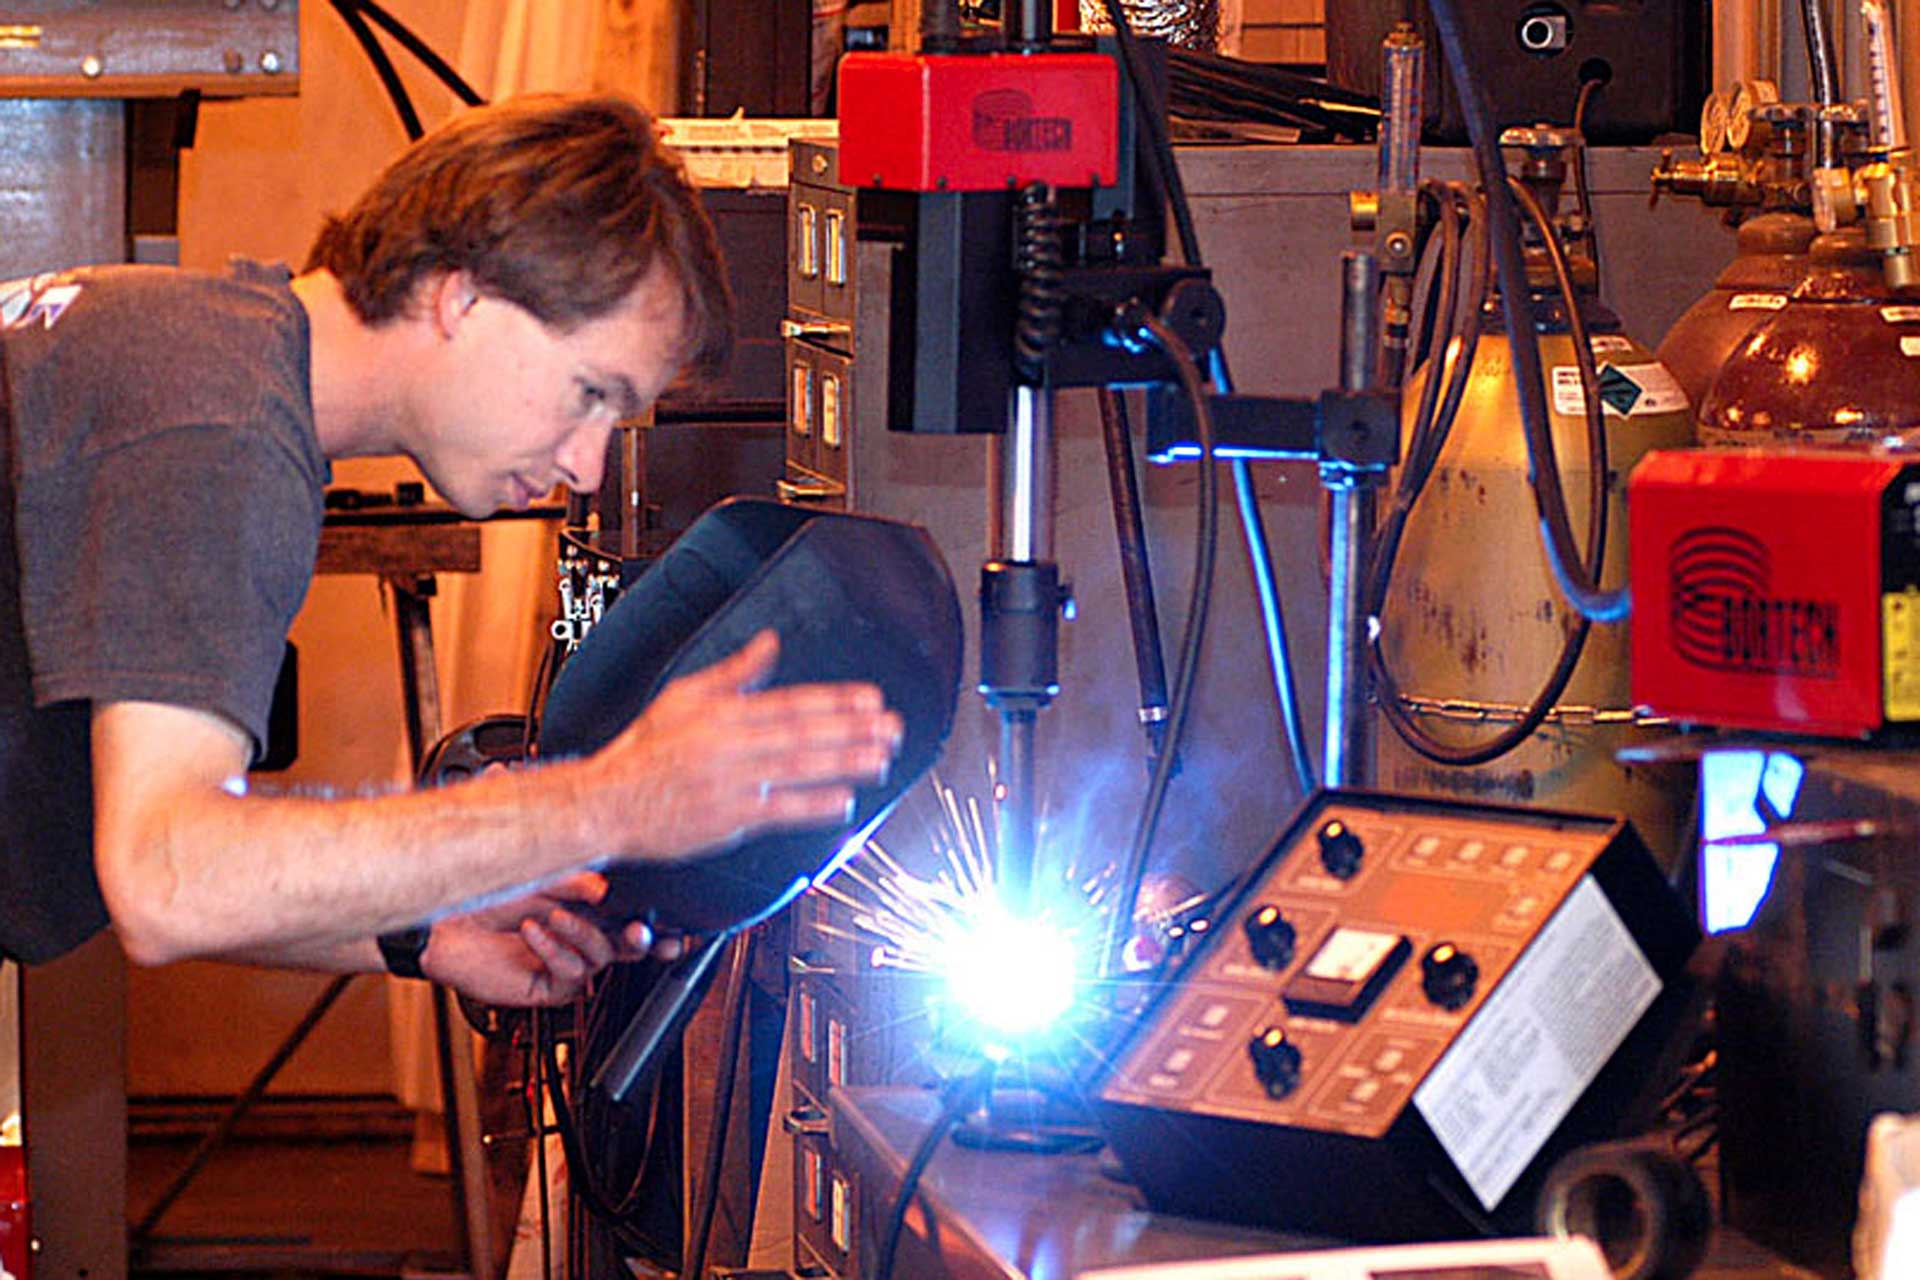 Sparks fly as a machinist's station.